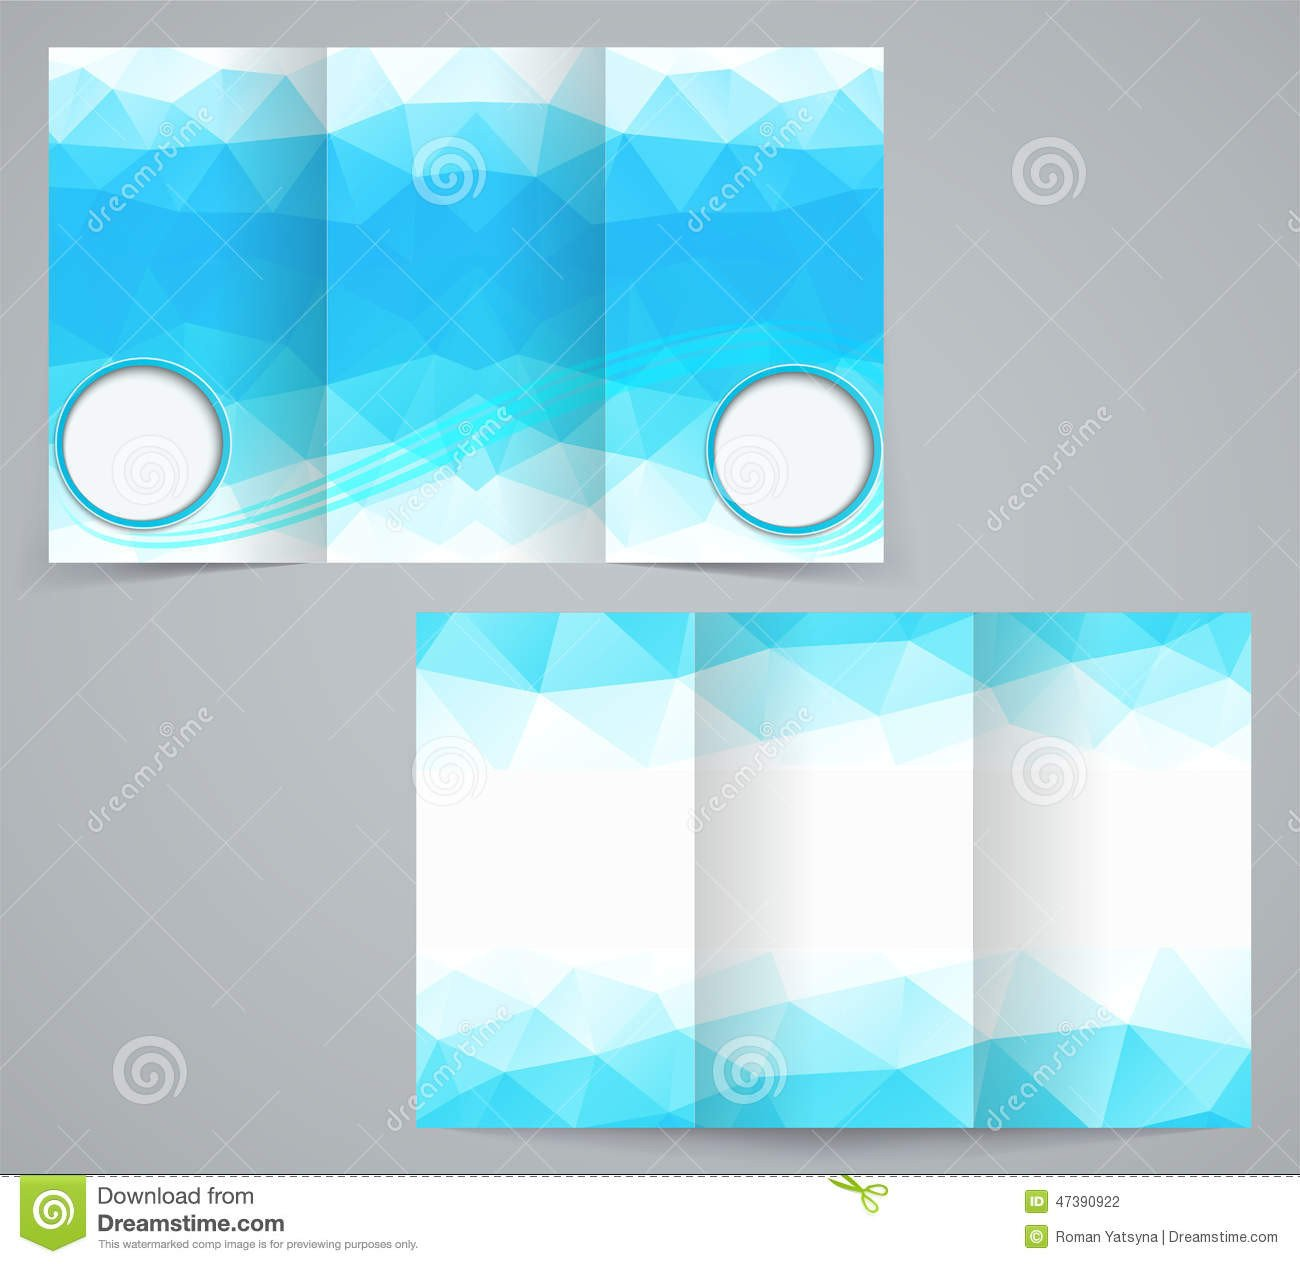 3 Fold Brochures Templates Three Fold Business Brochure Template with Triangles